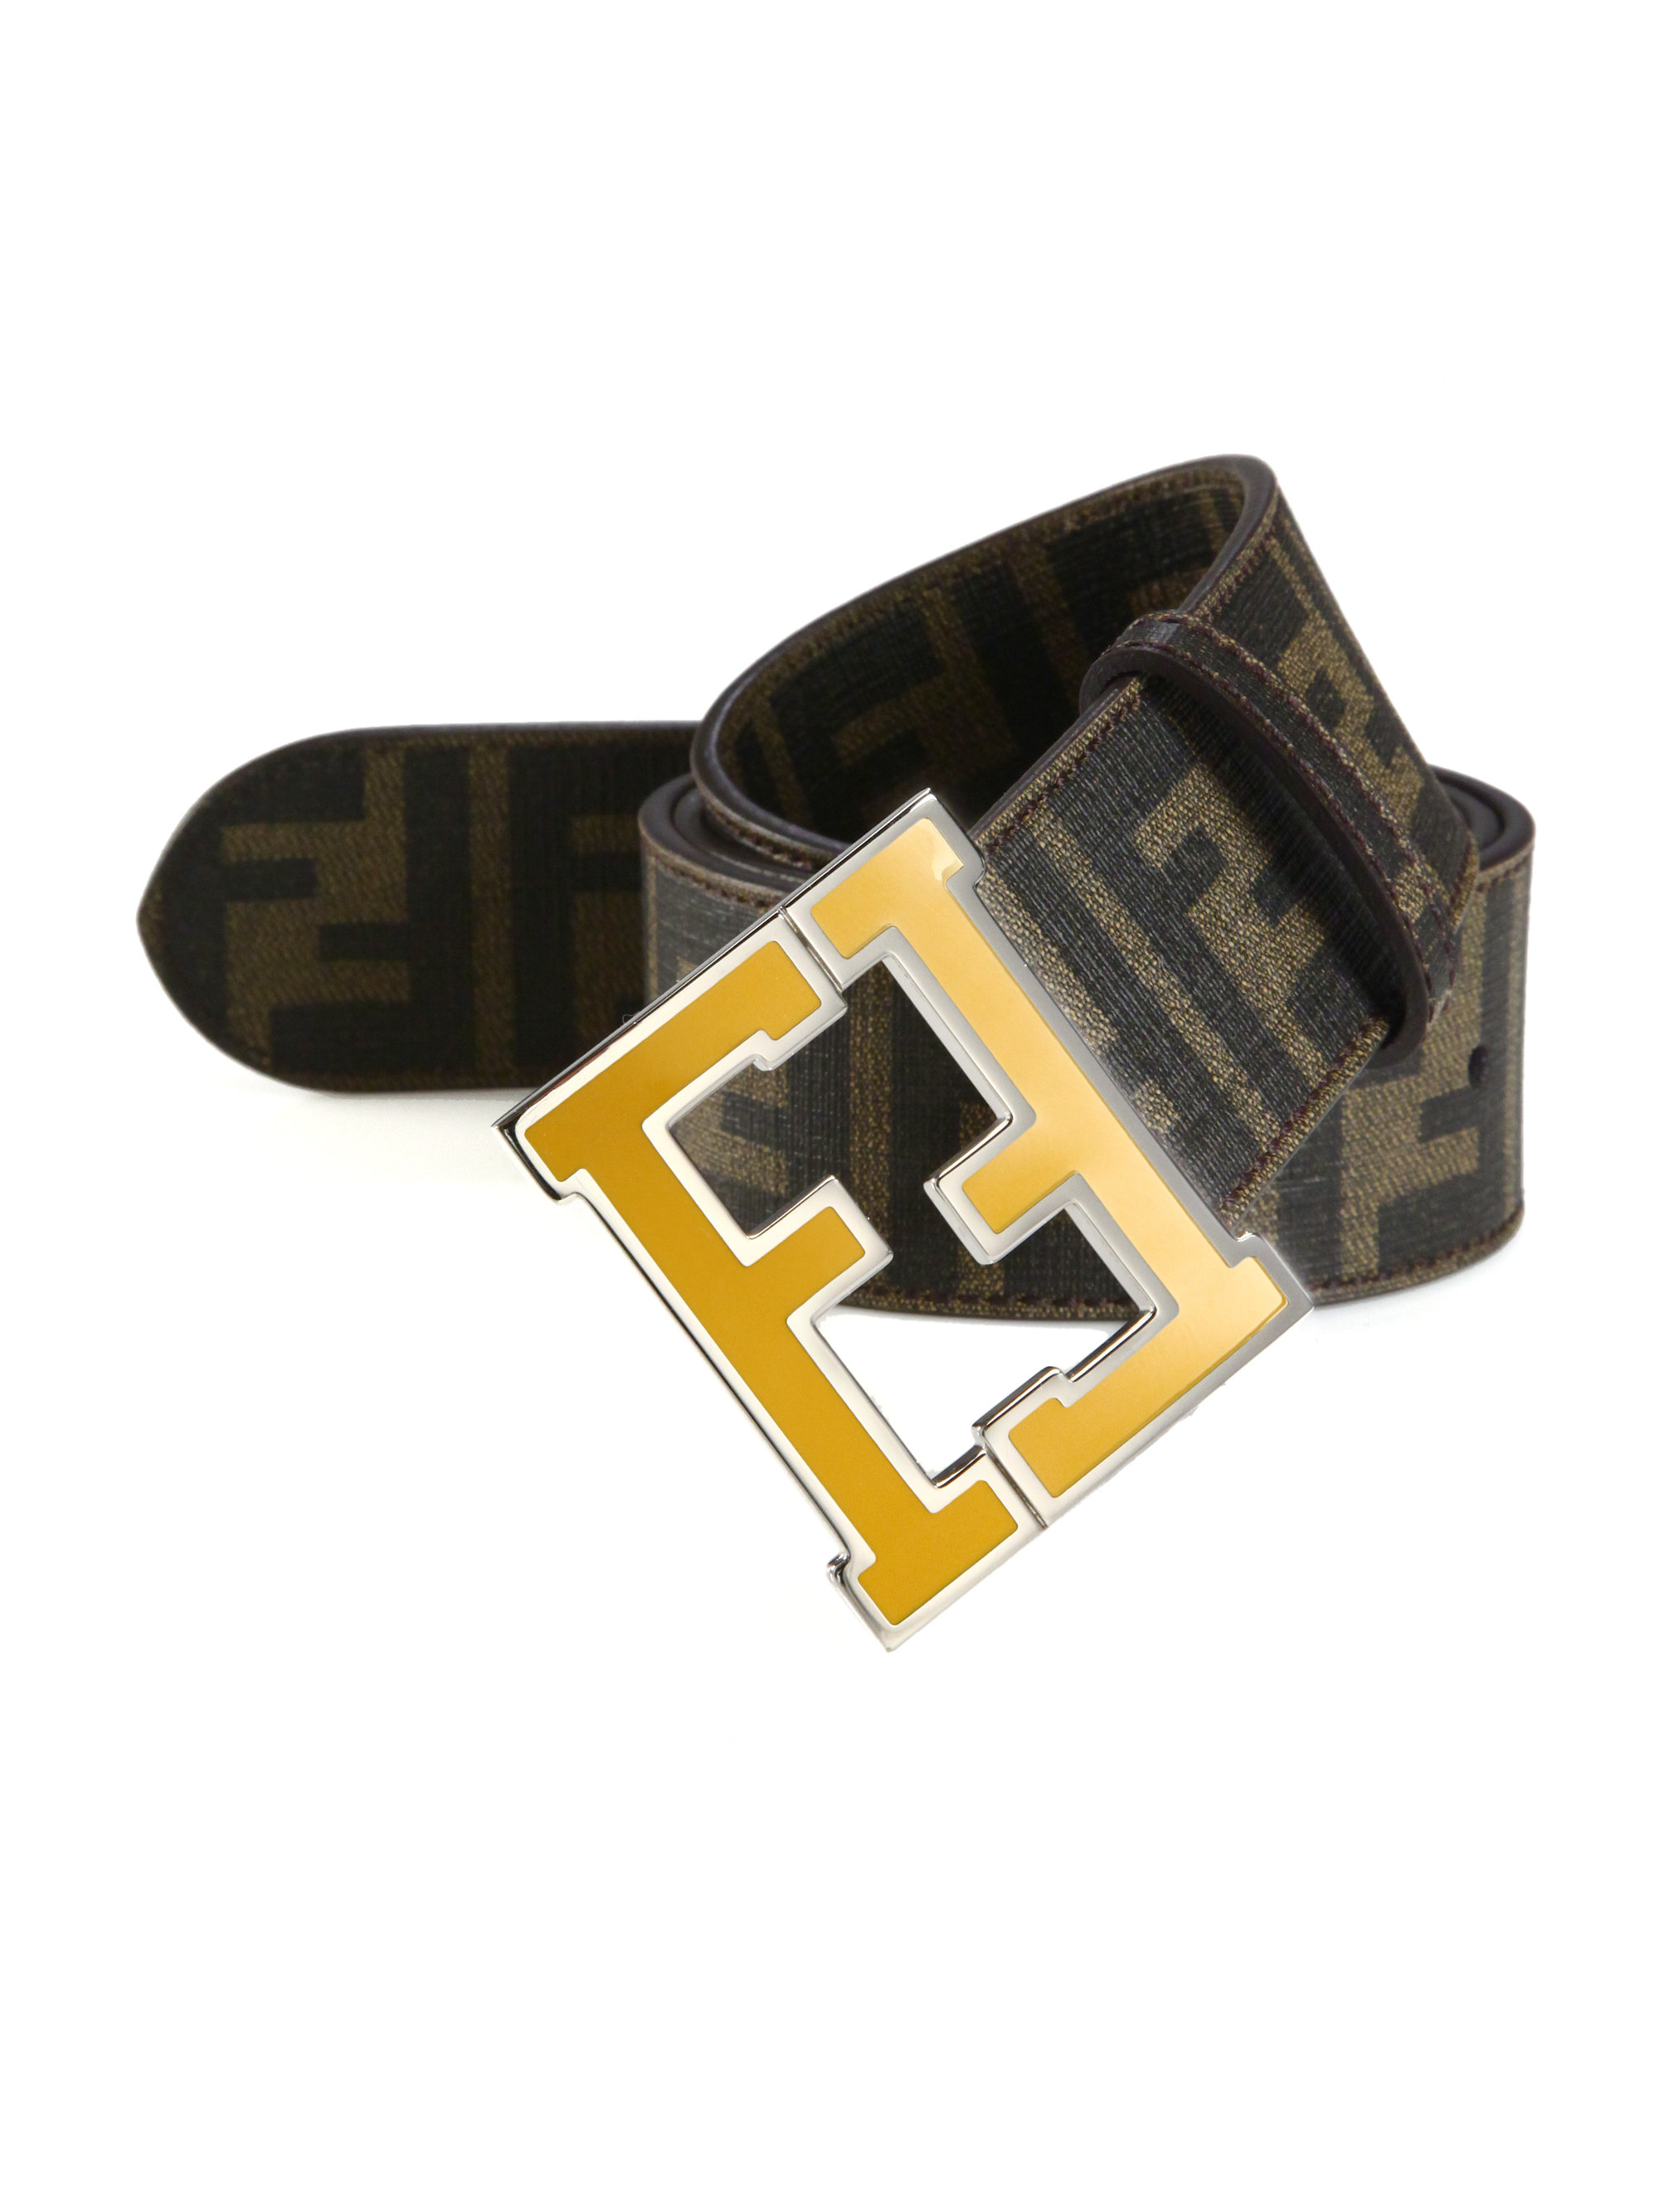 fendi logo college canvas belt in brown for men lyst